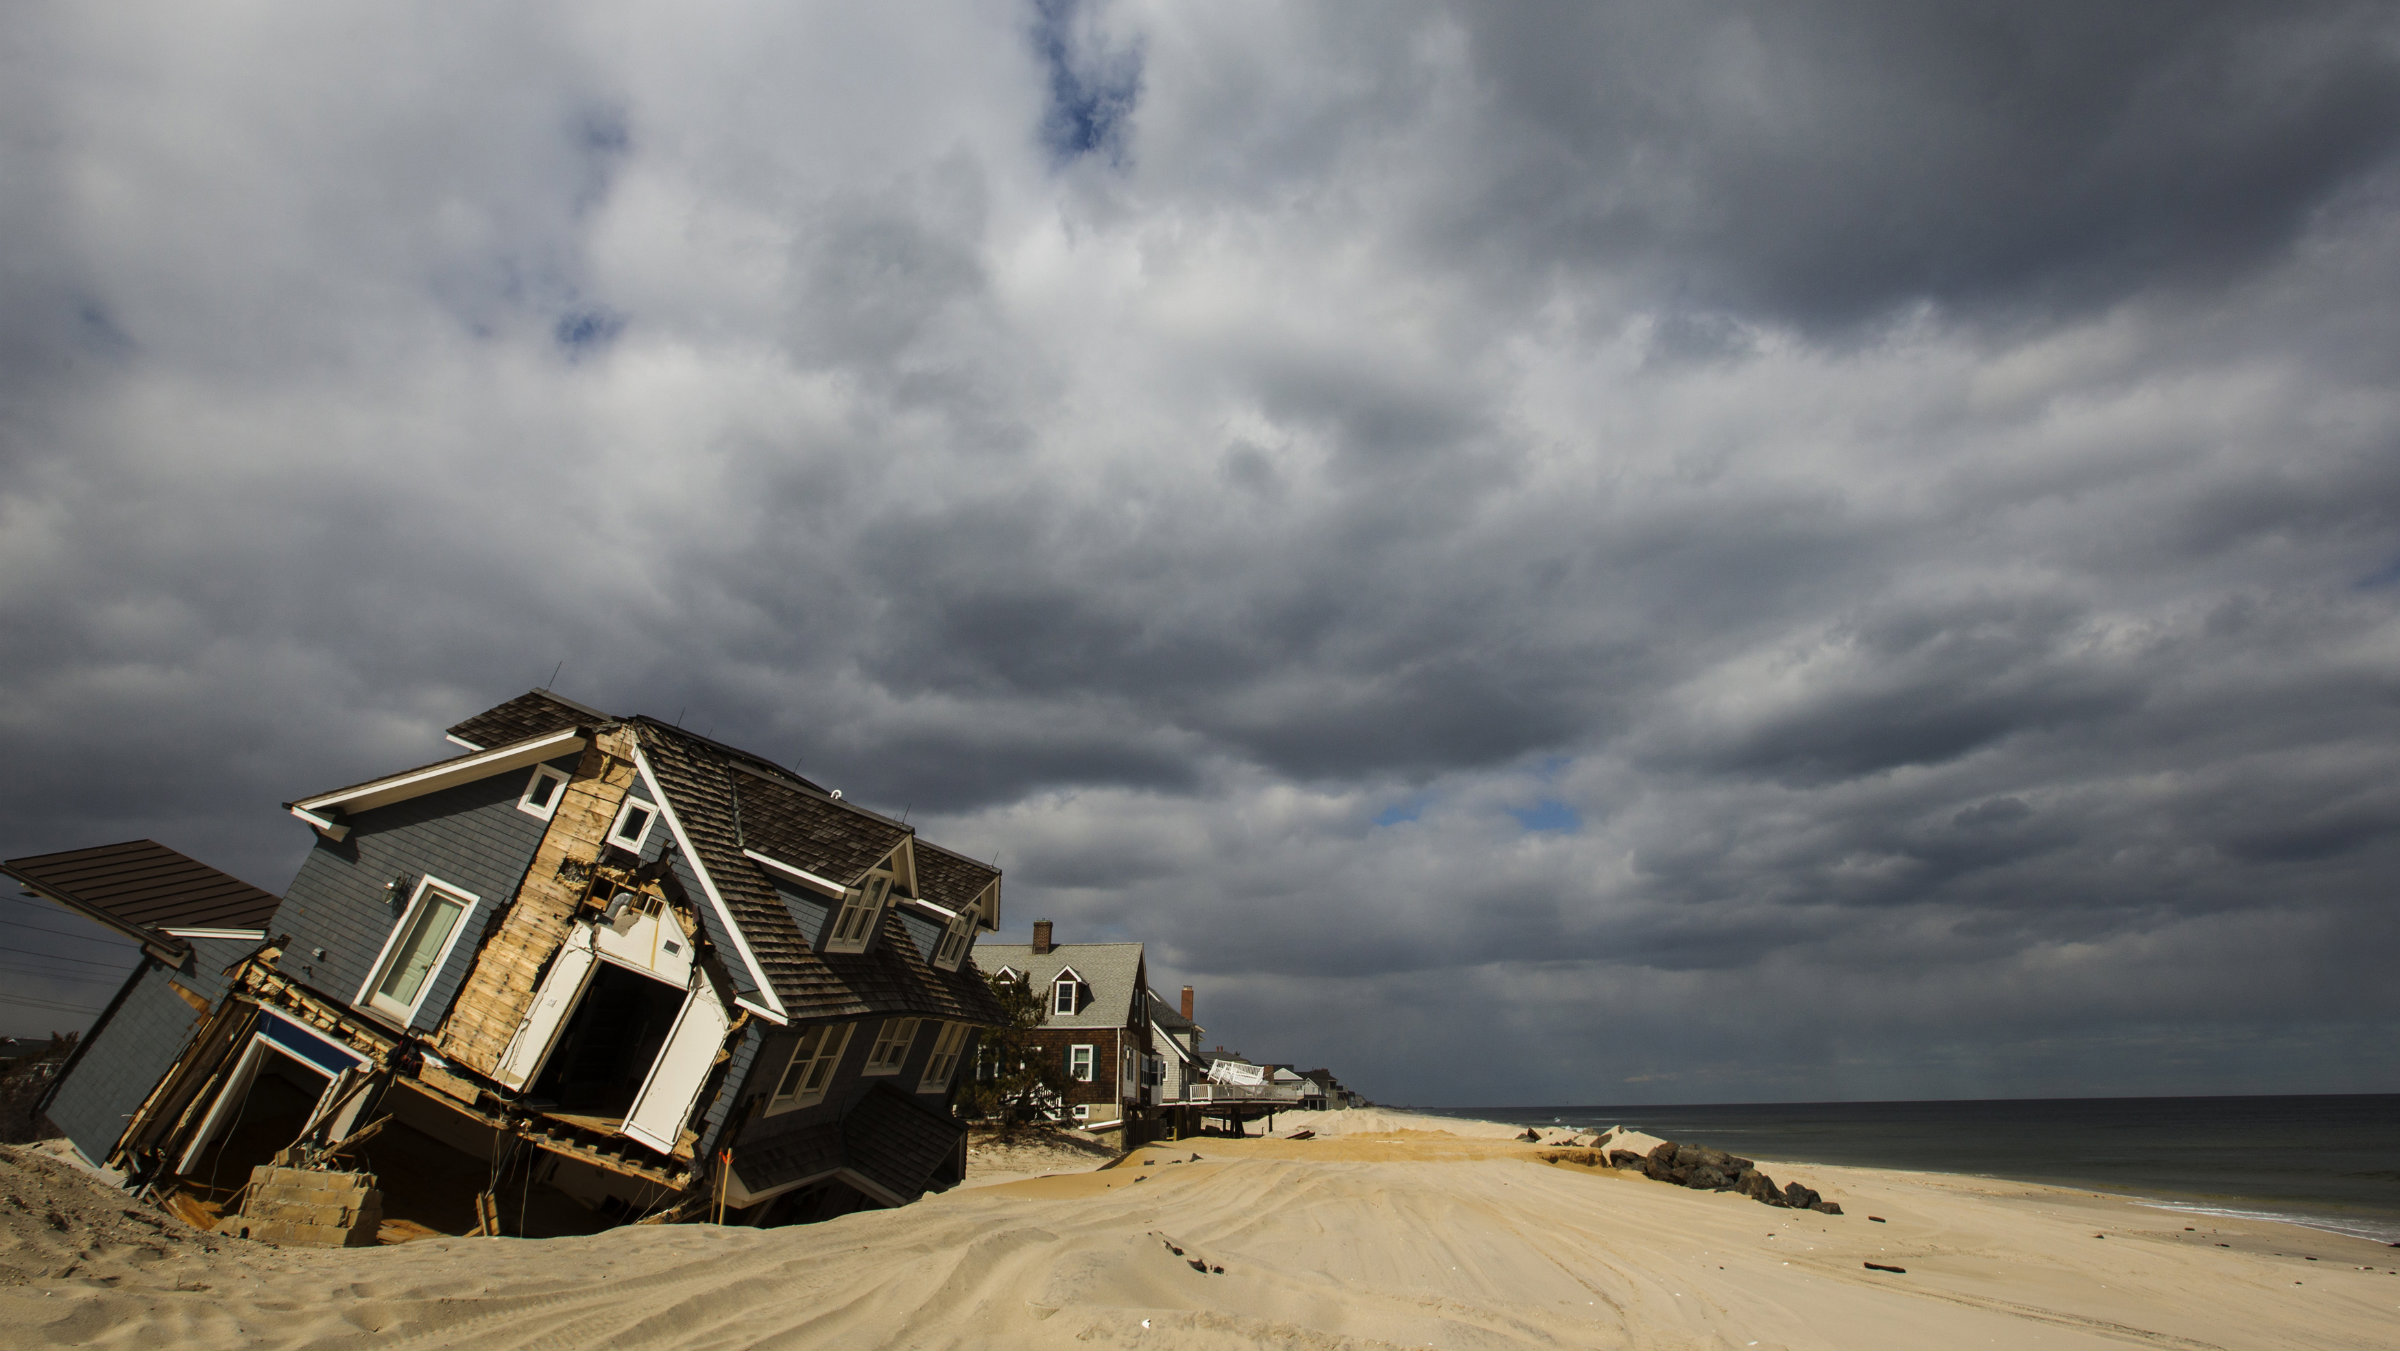 Mantoloking, New Jersey on March 22, 2013.